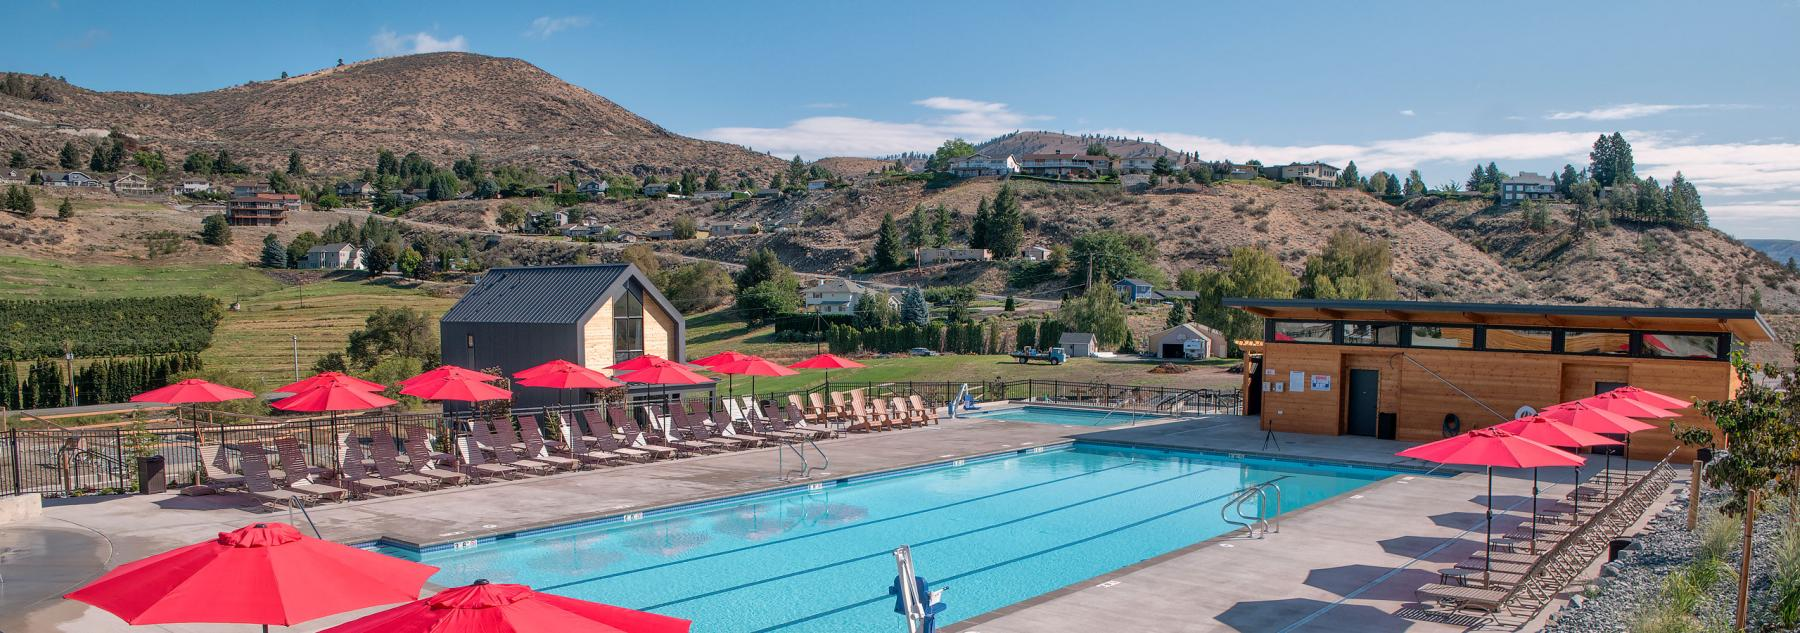 New Vineyard Pool, Open Year-Round!